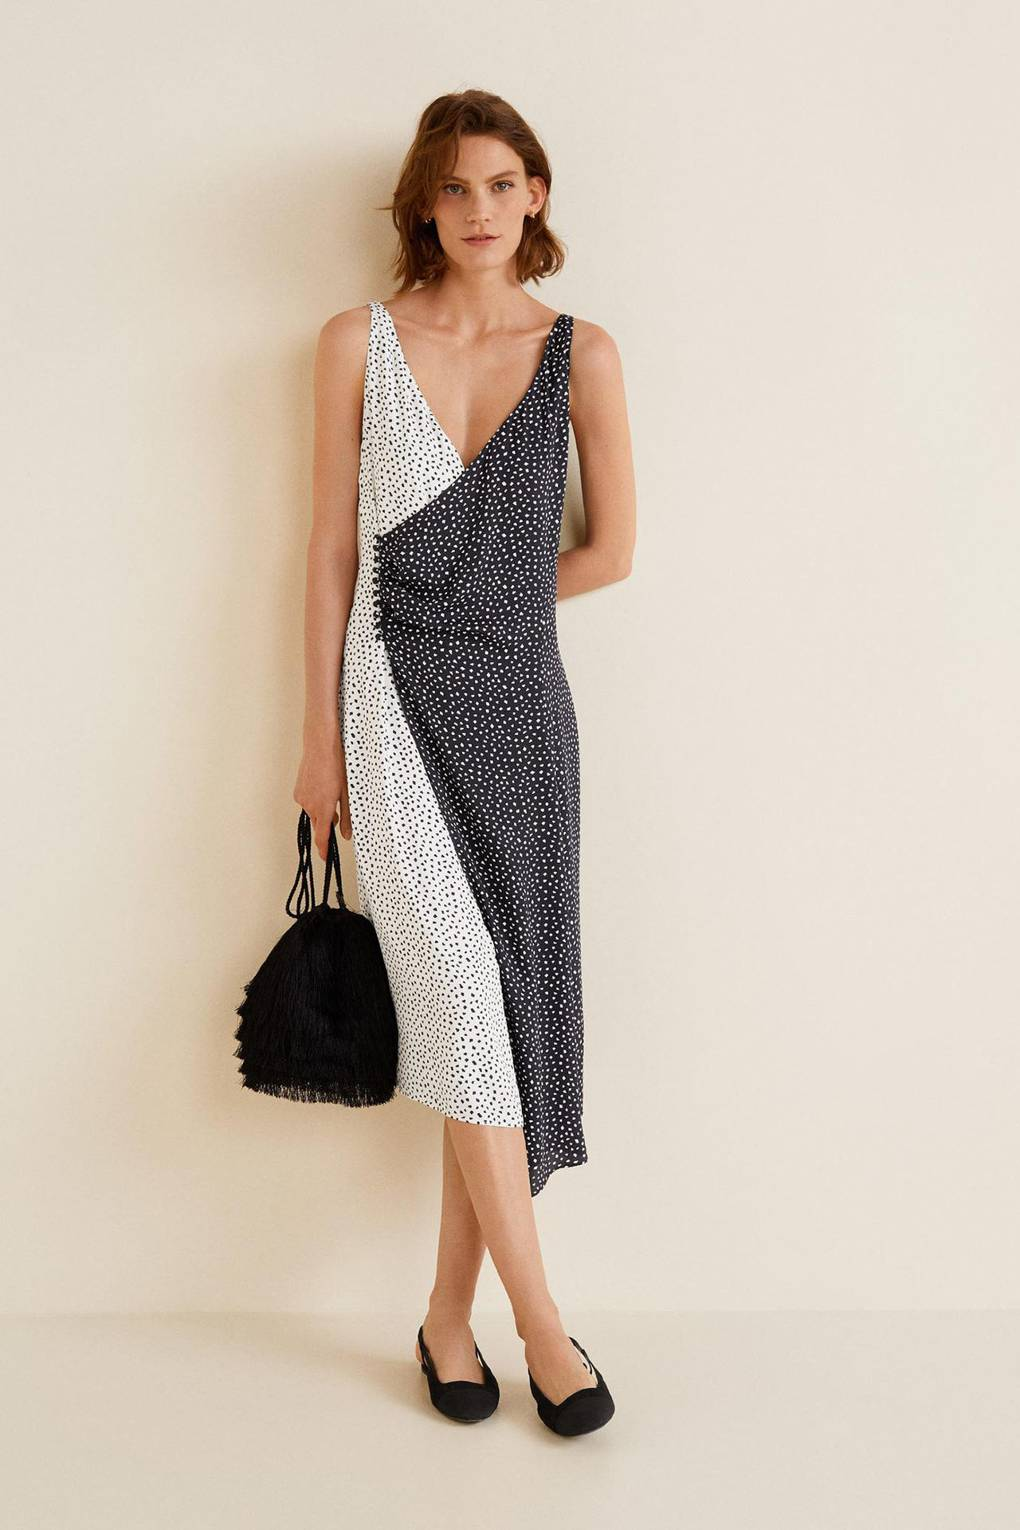 409121fc91 Mango Just Dropped The Perfect Office Dress For This Weather ...